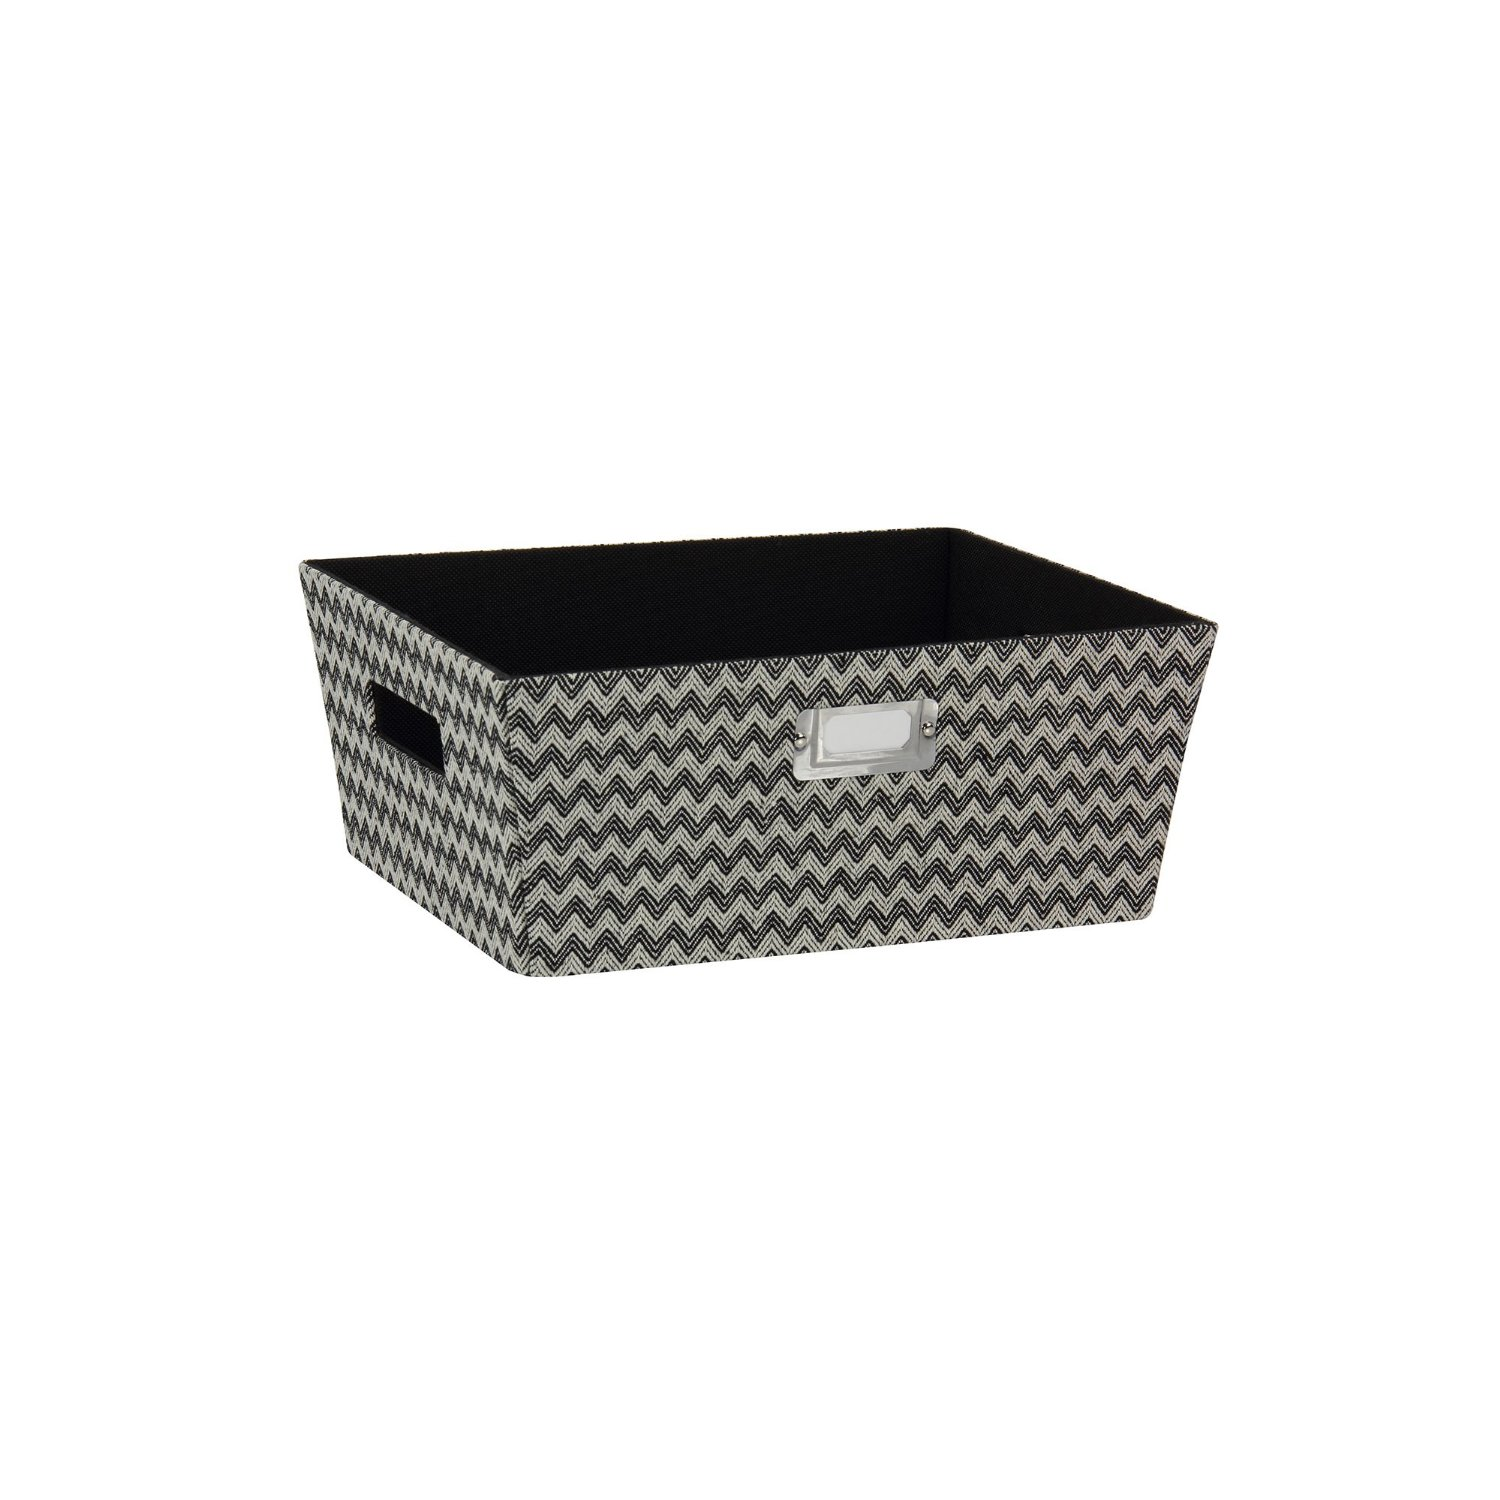 Household Essentials Hard-Sided Tapered Storage Bin, Small, Black Chevron